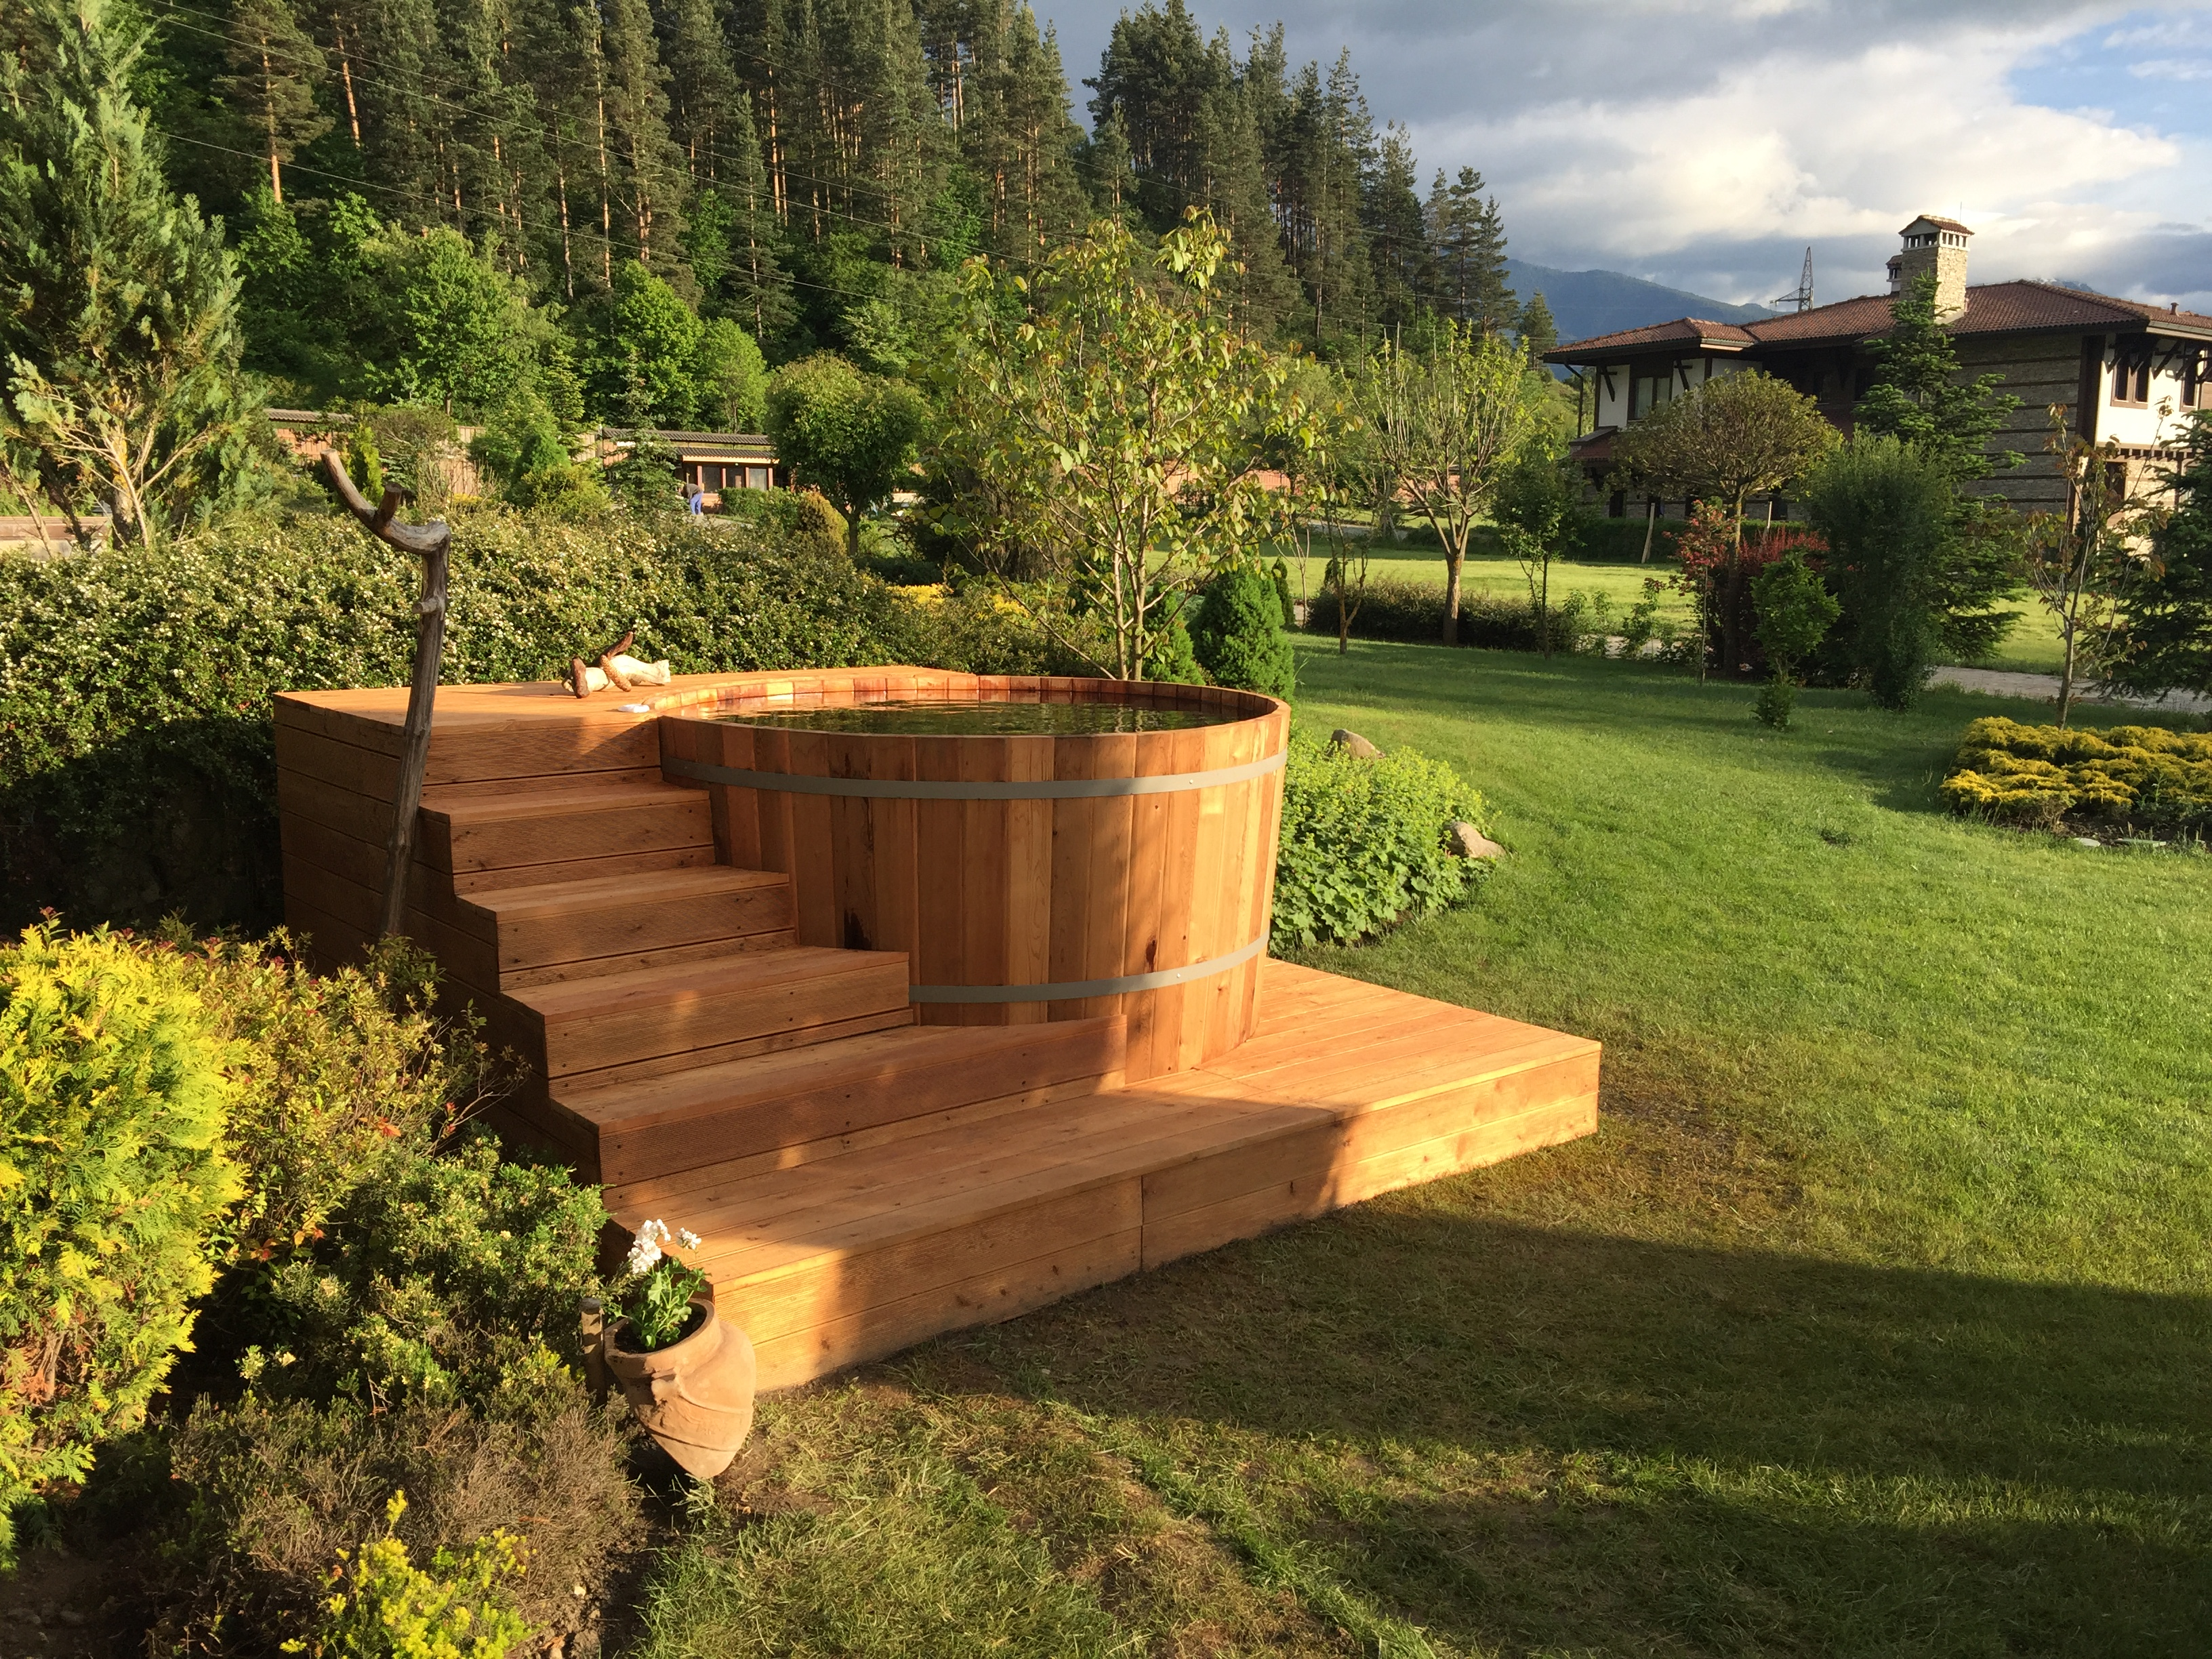 Hot tub and garden